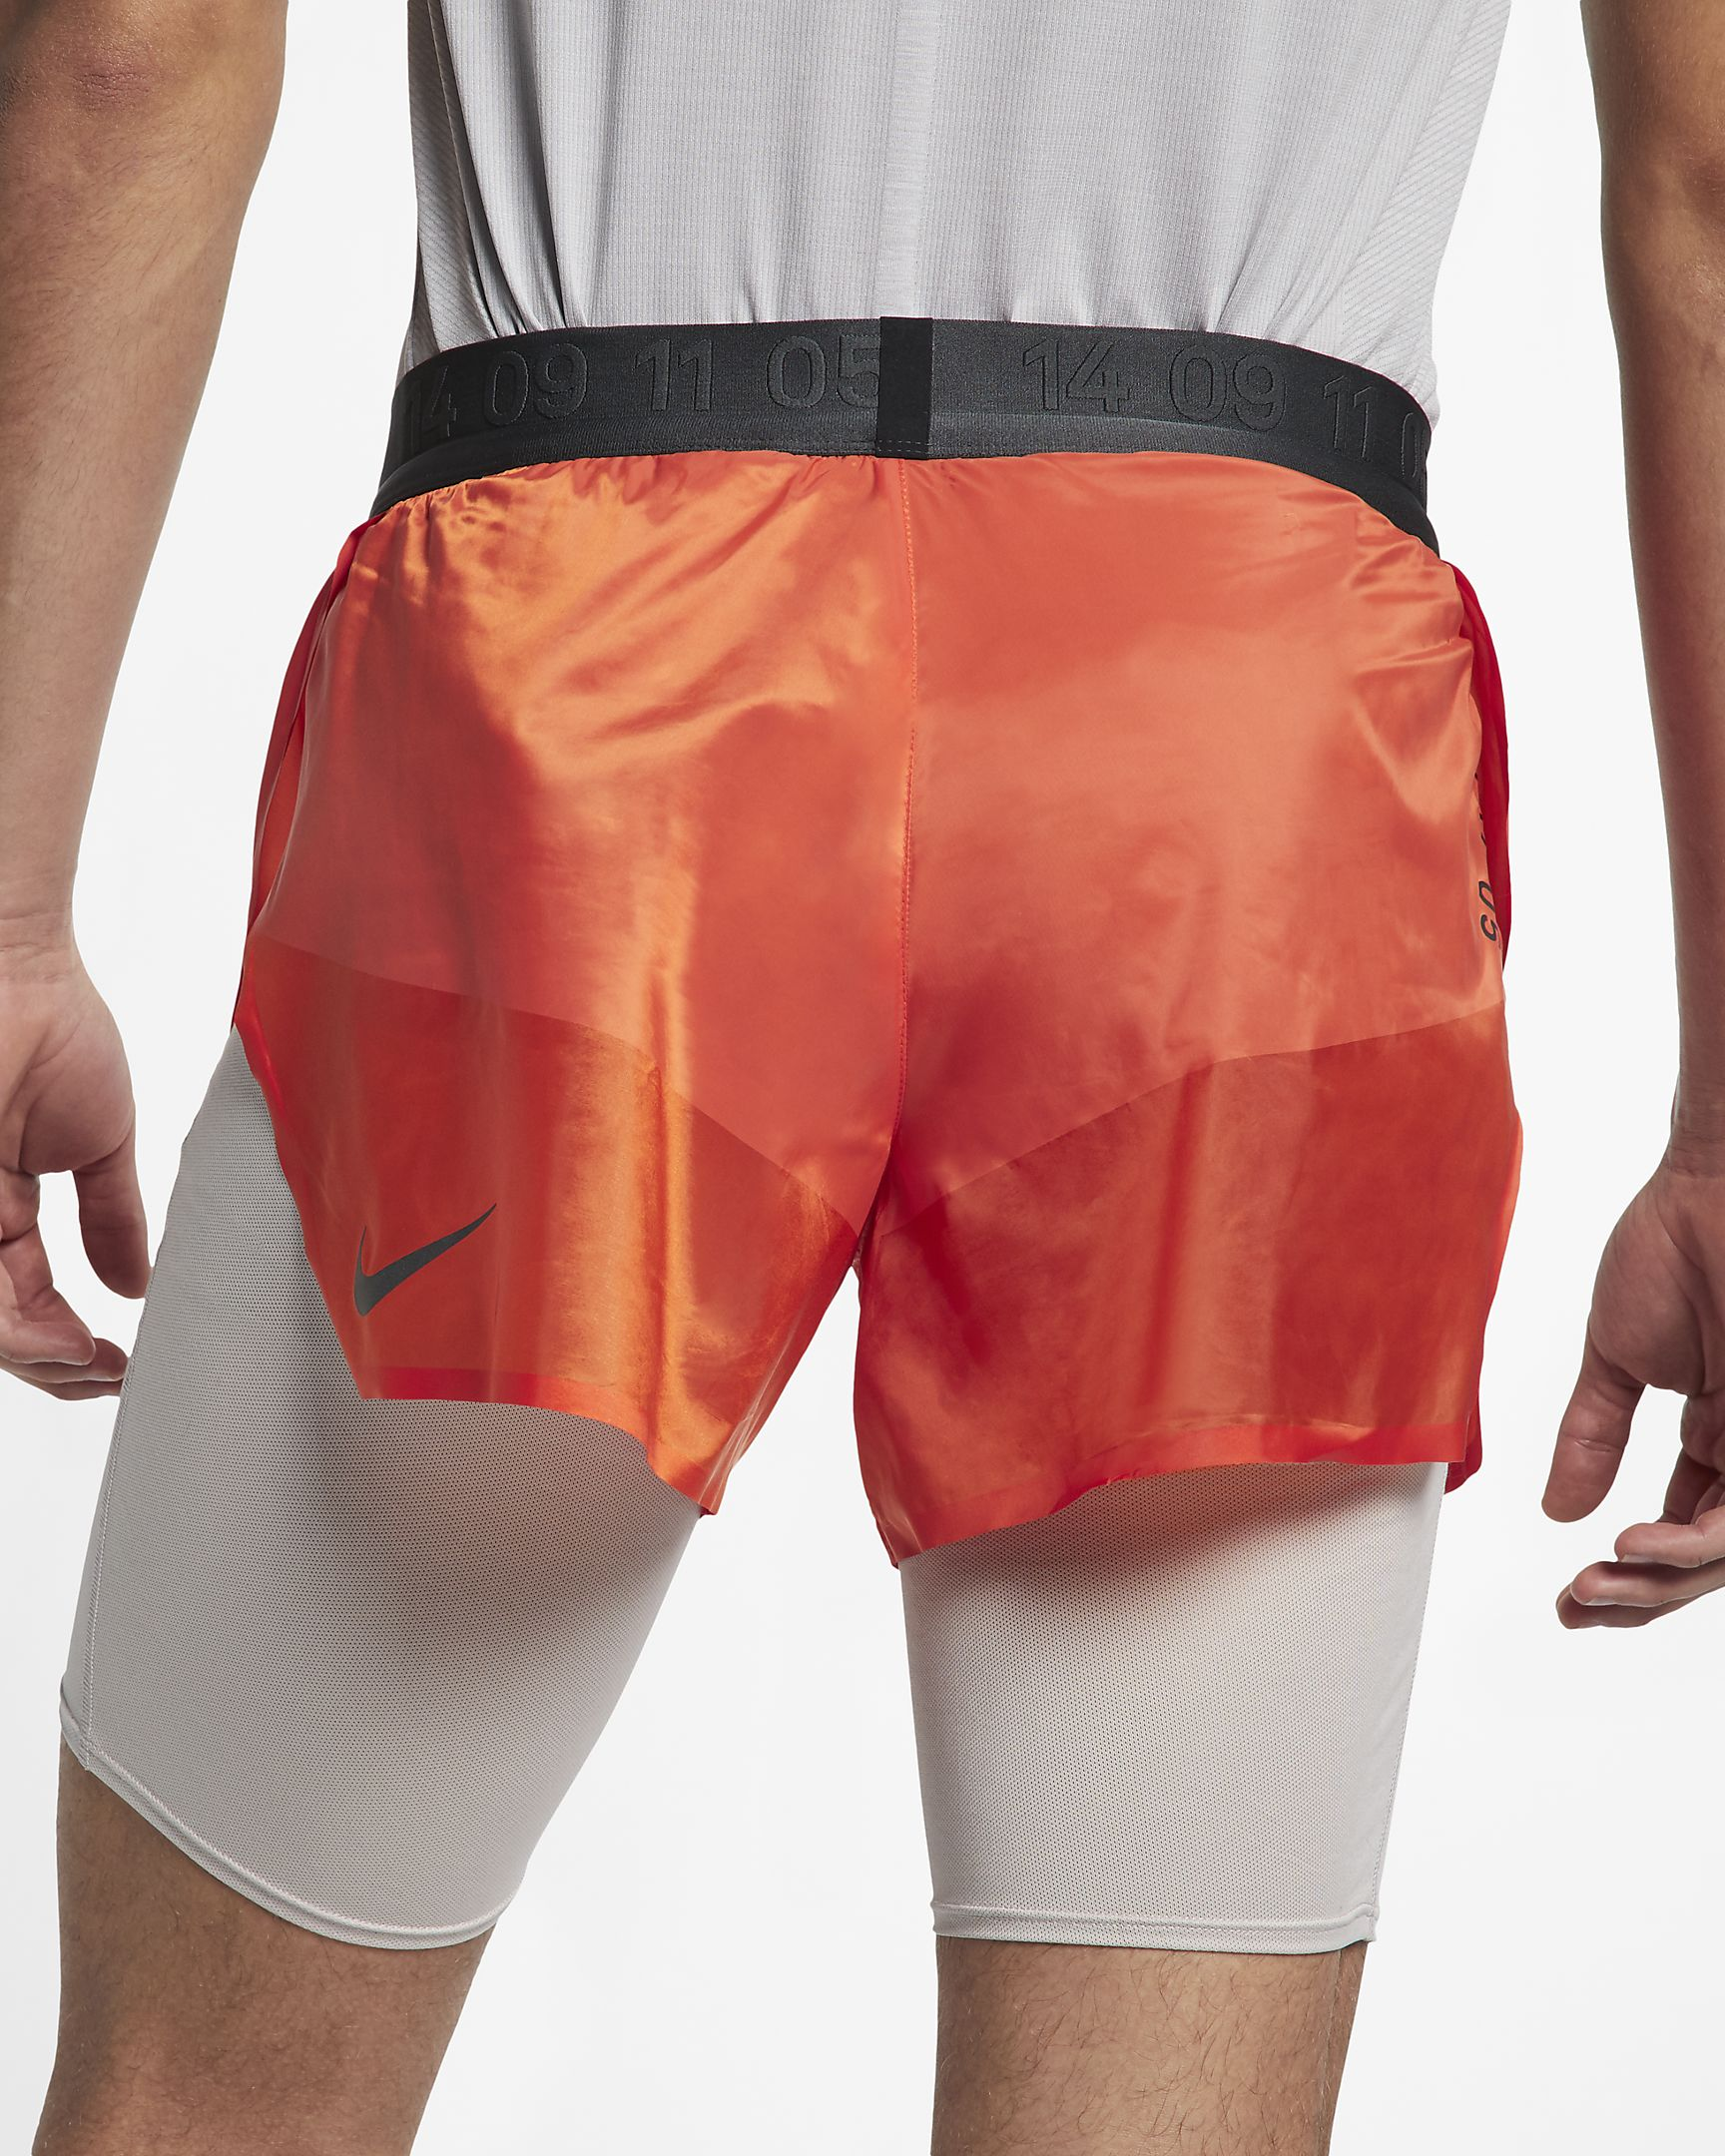 Men's Nike Tech Pack 2 in 1 Running Shorts.   AQ6442